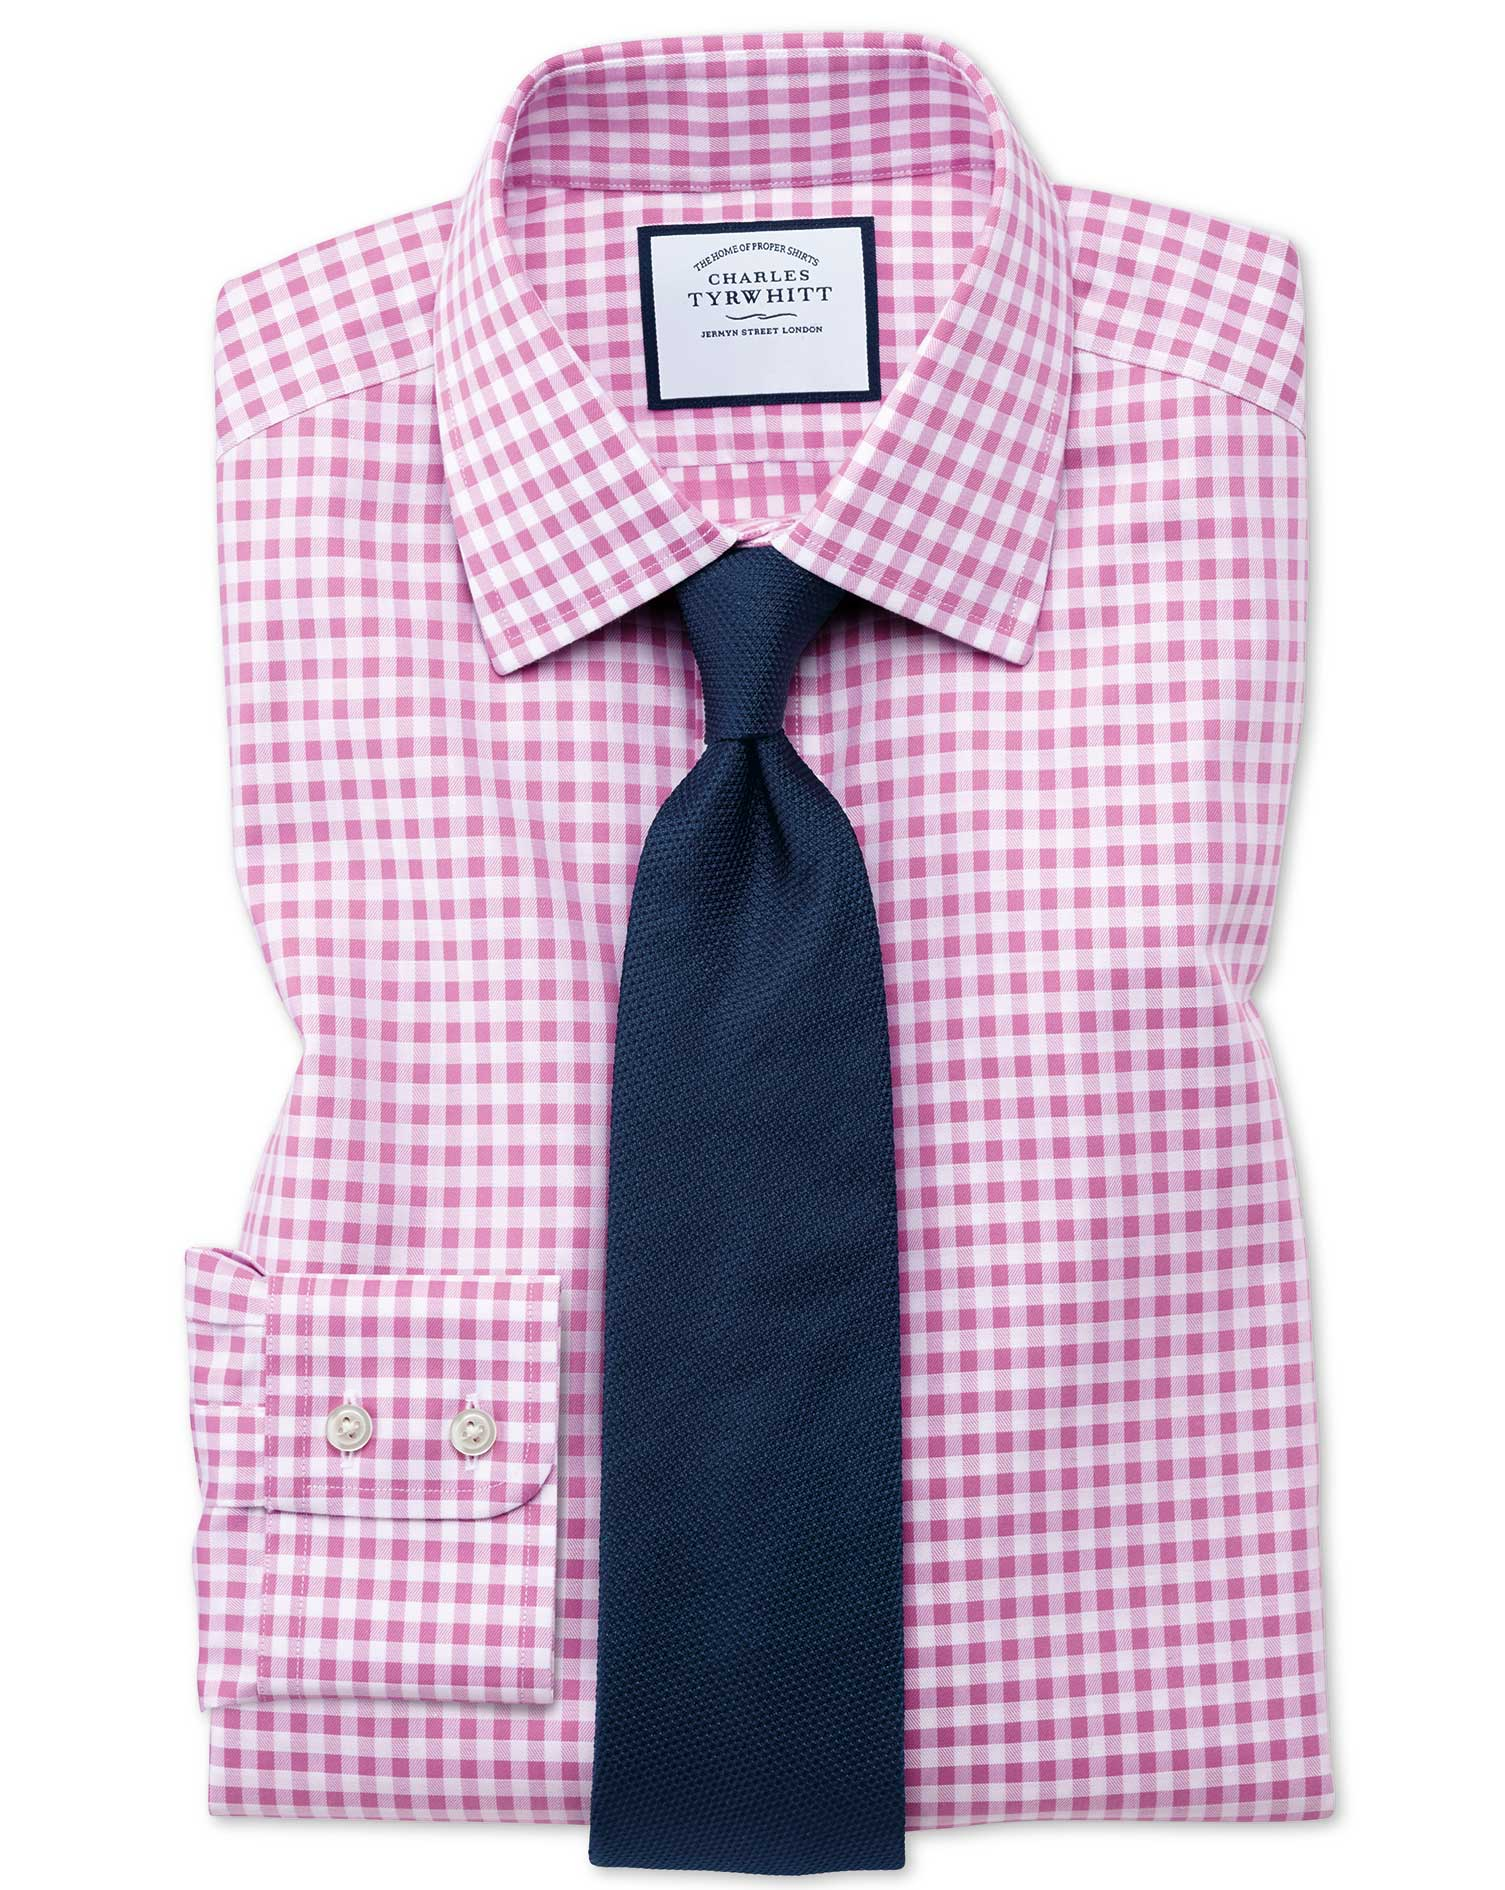 Extra Slim Fit Non-Iron Gingham Pink Cotton Formal Shirt Single Cuff Size 15.5/32 by Charles Tyrwhit